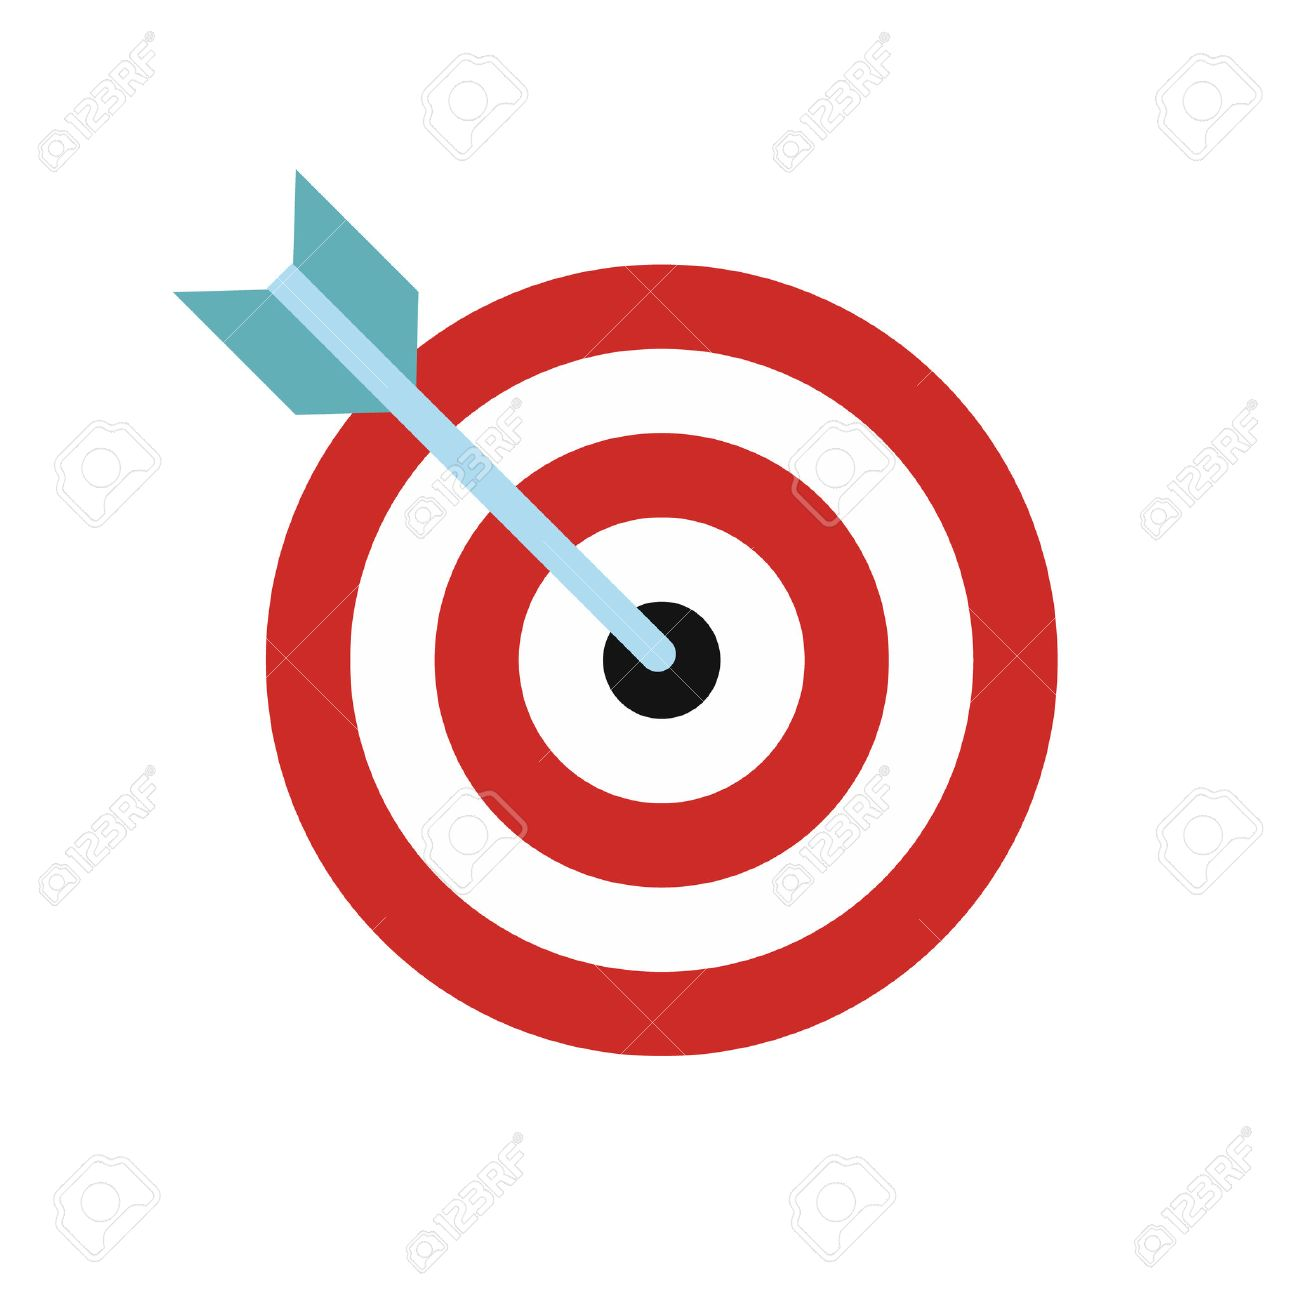 Target with dart flat icon isolated on white background Banque d'images - 51977844